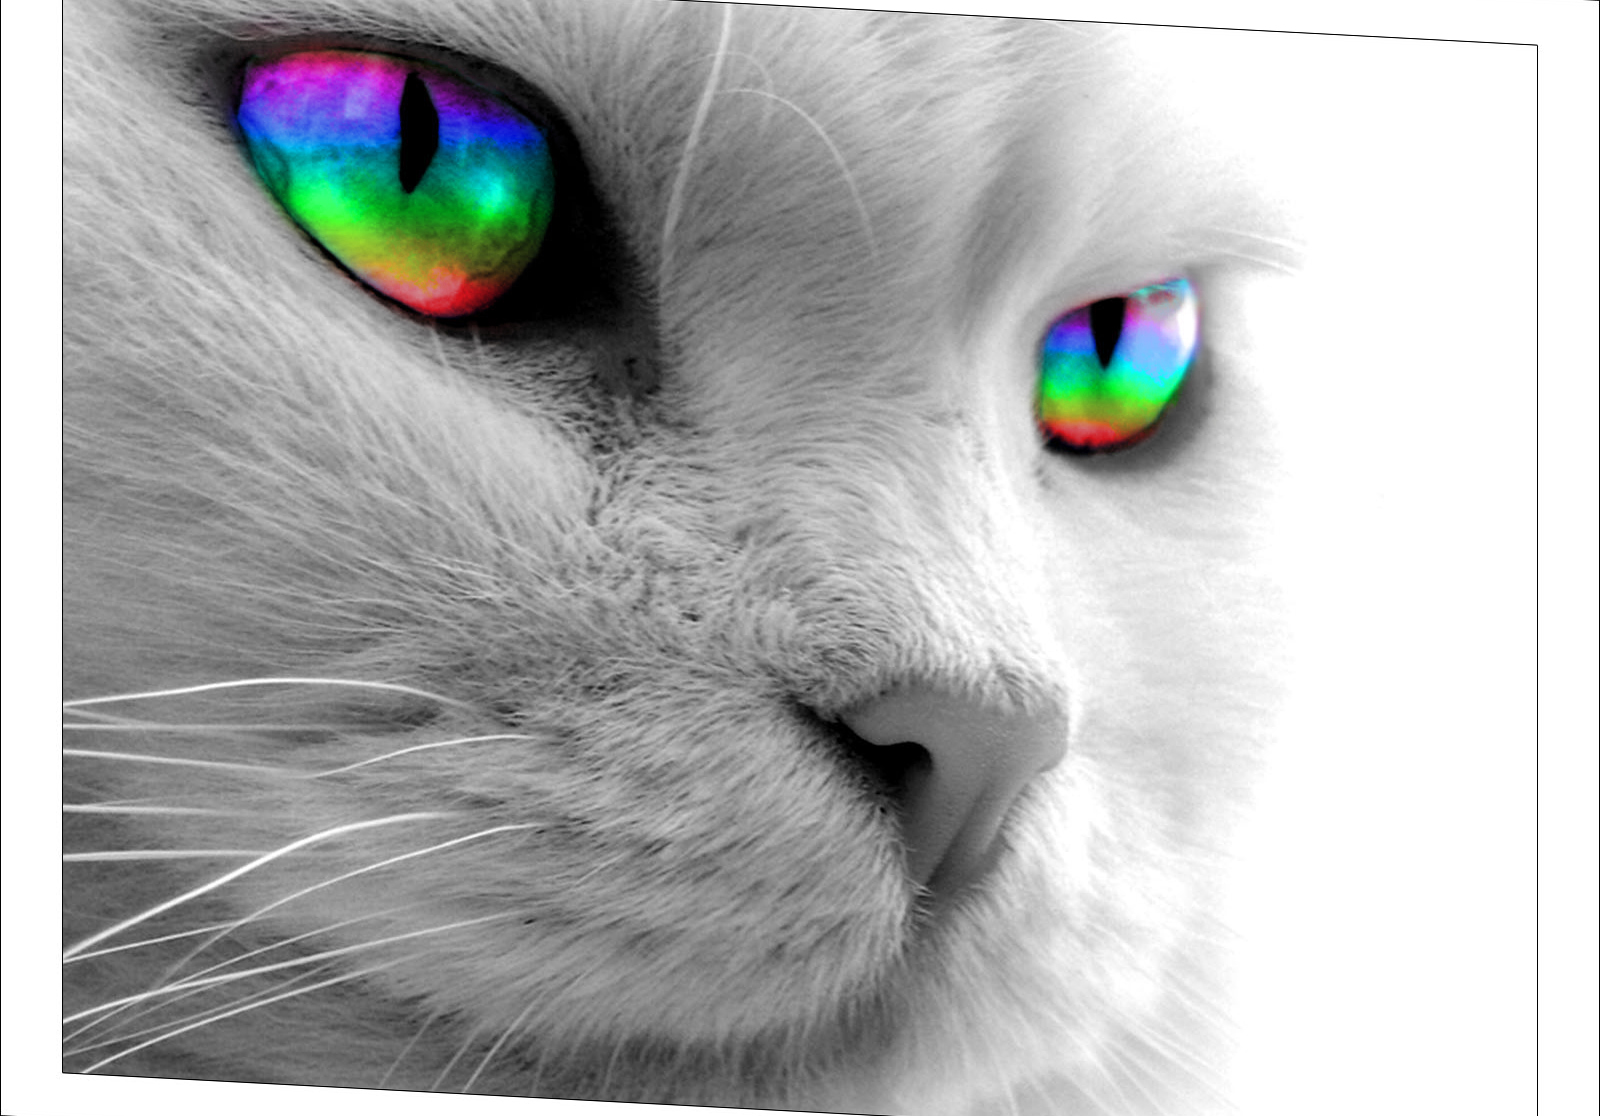 Cute White Kittens With Blue Eyes Wallpaper Grayscale Cat Wallpaper But Rainbow Eyes Wallpapers Hd